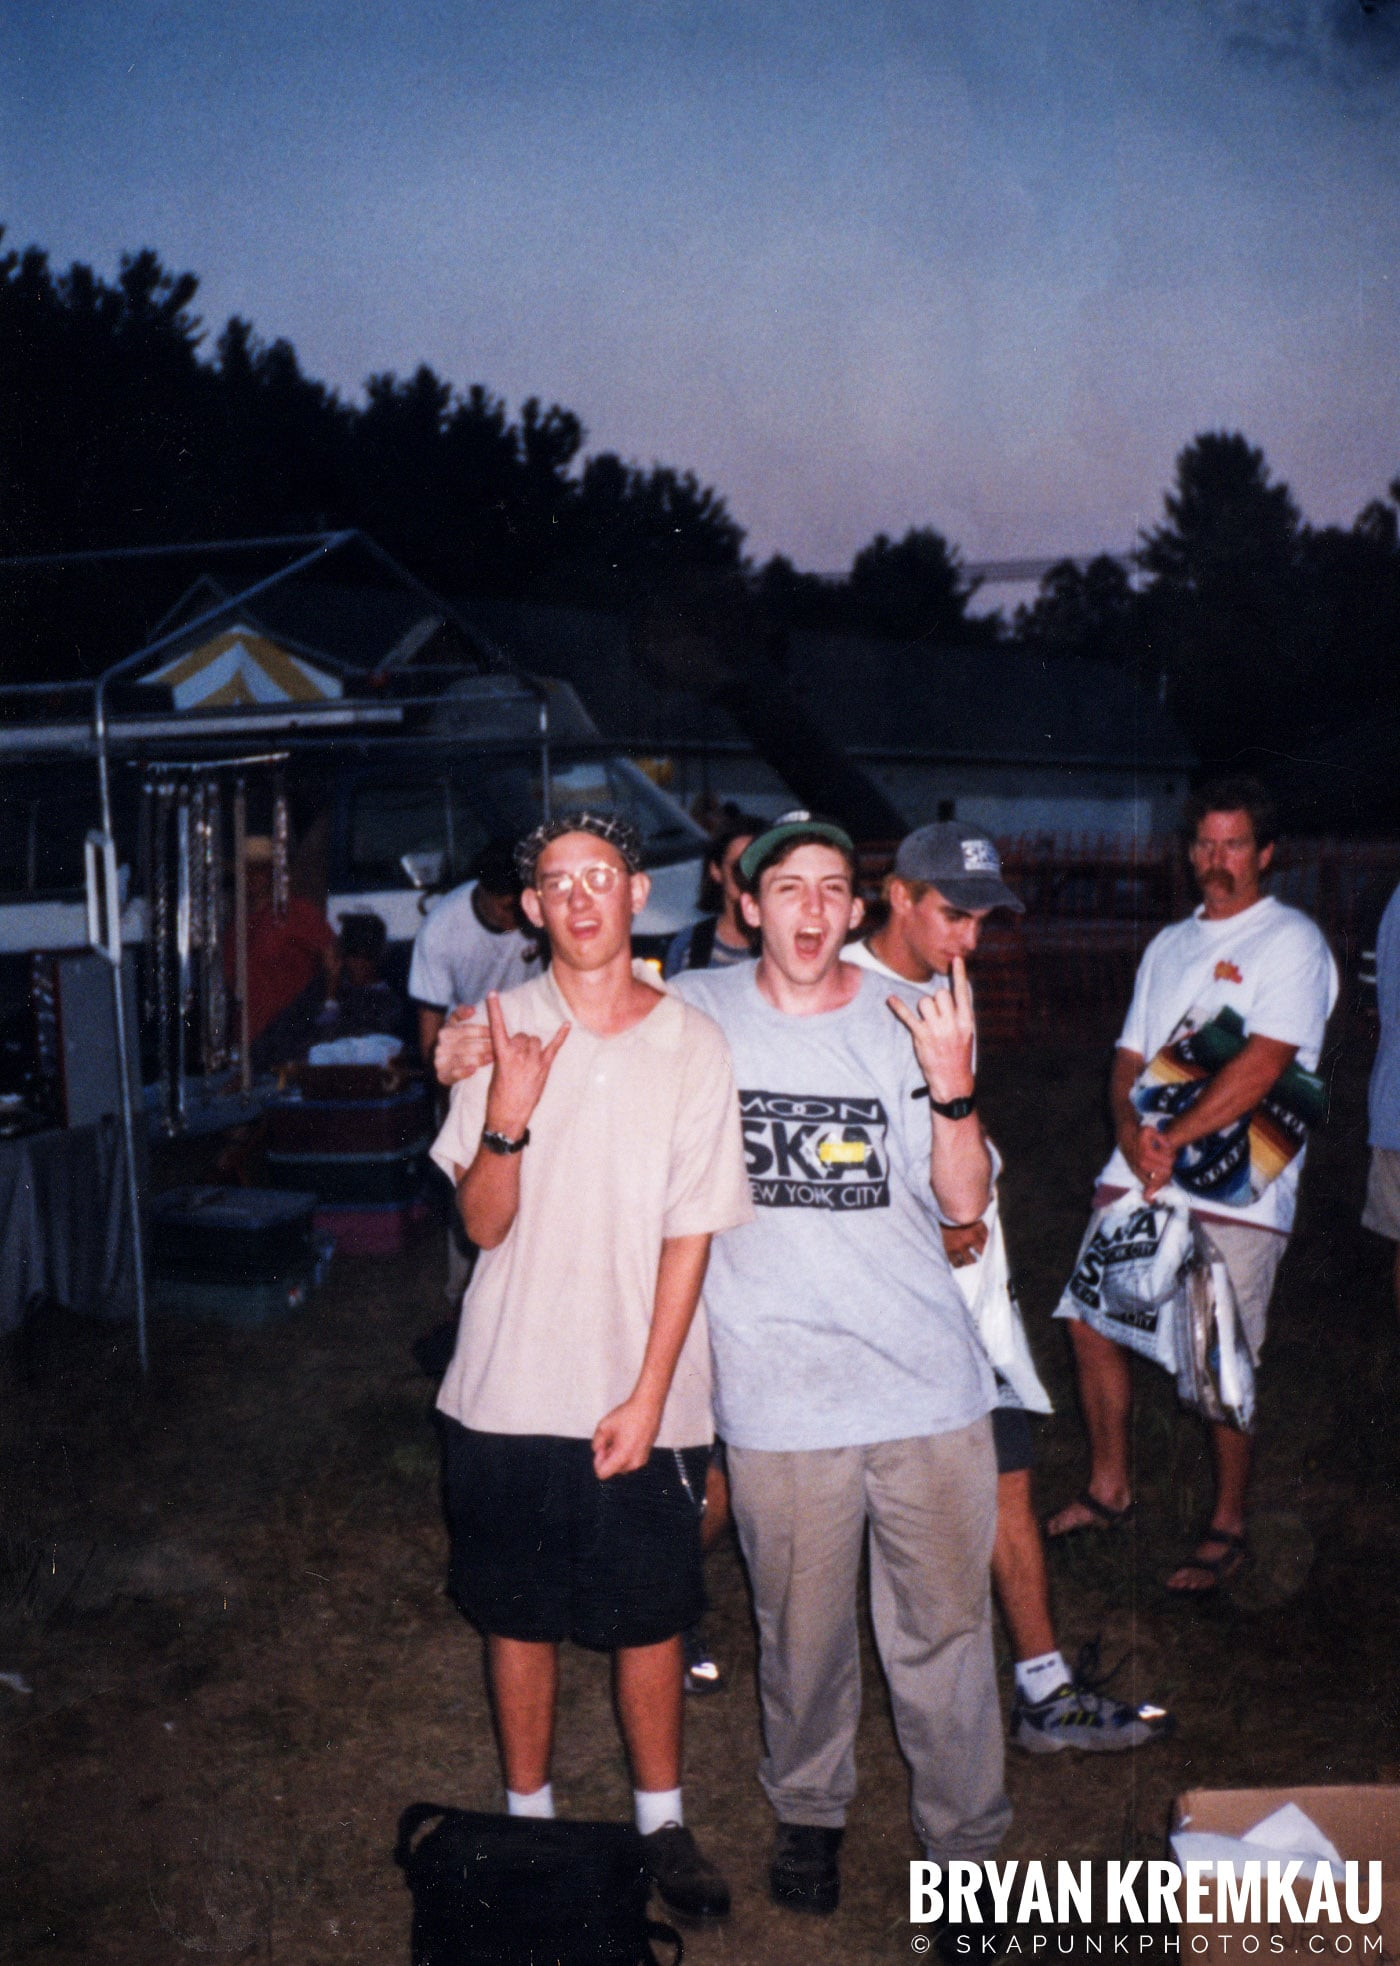 Crowd Shots @ New England Ska Fest 98, Westford, MA - 8.22.98 (3)